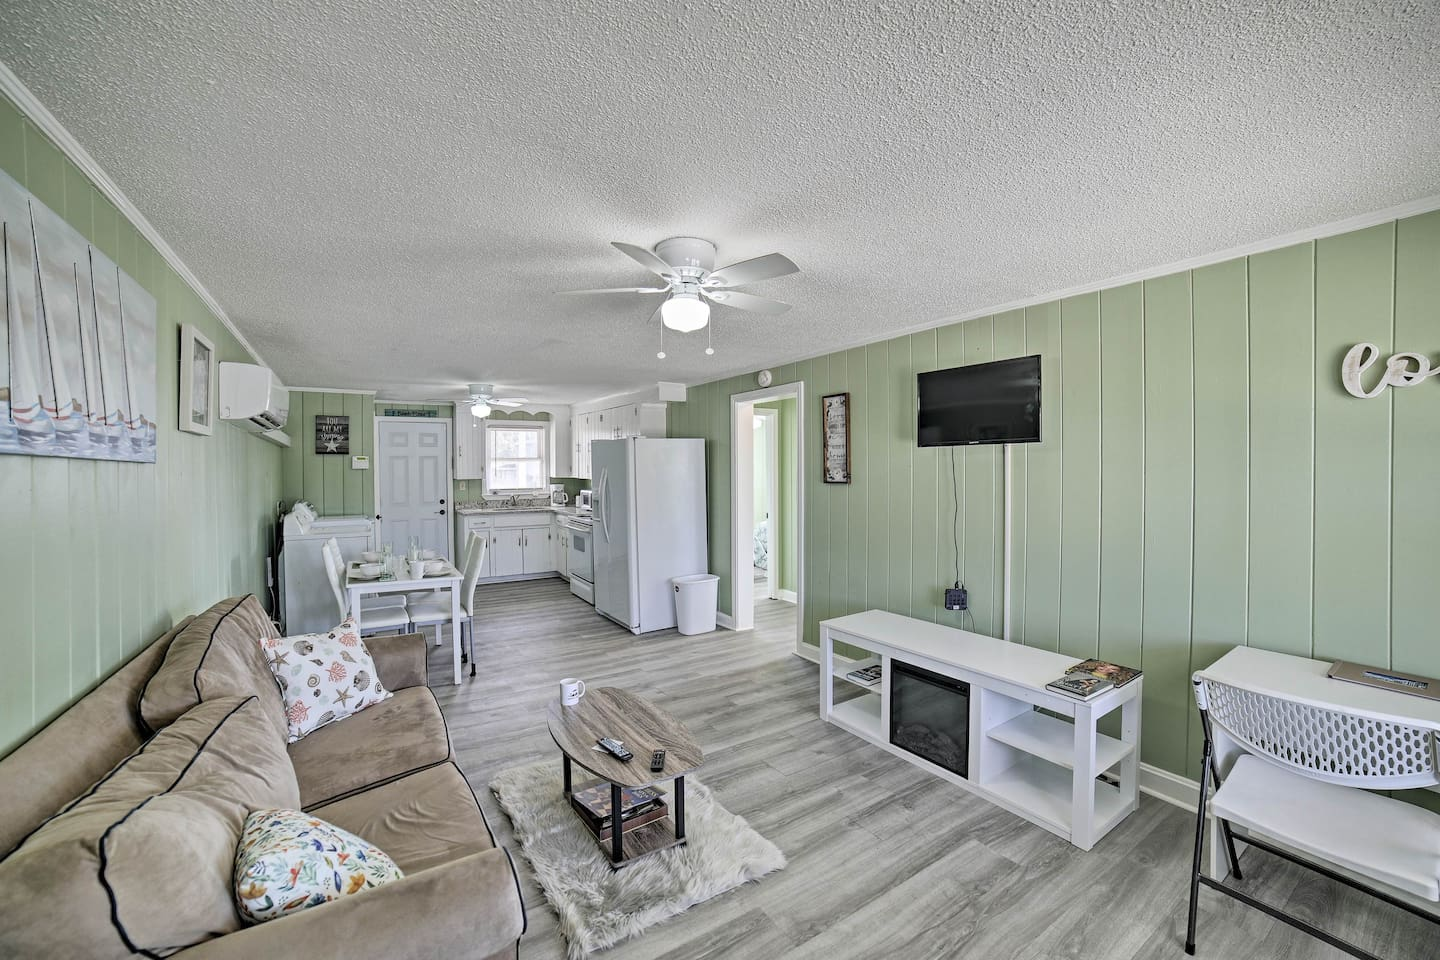 Enjoy a relaxing getaway to this Myrtle Beach vacation rental apartment.